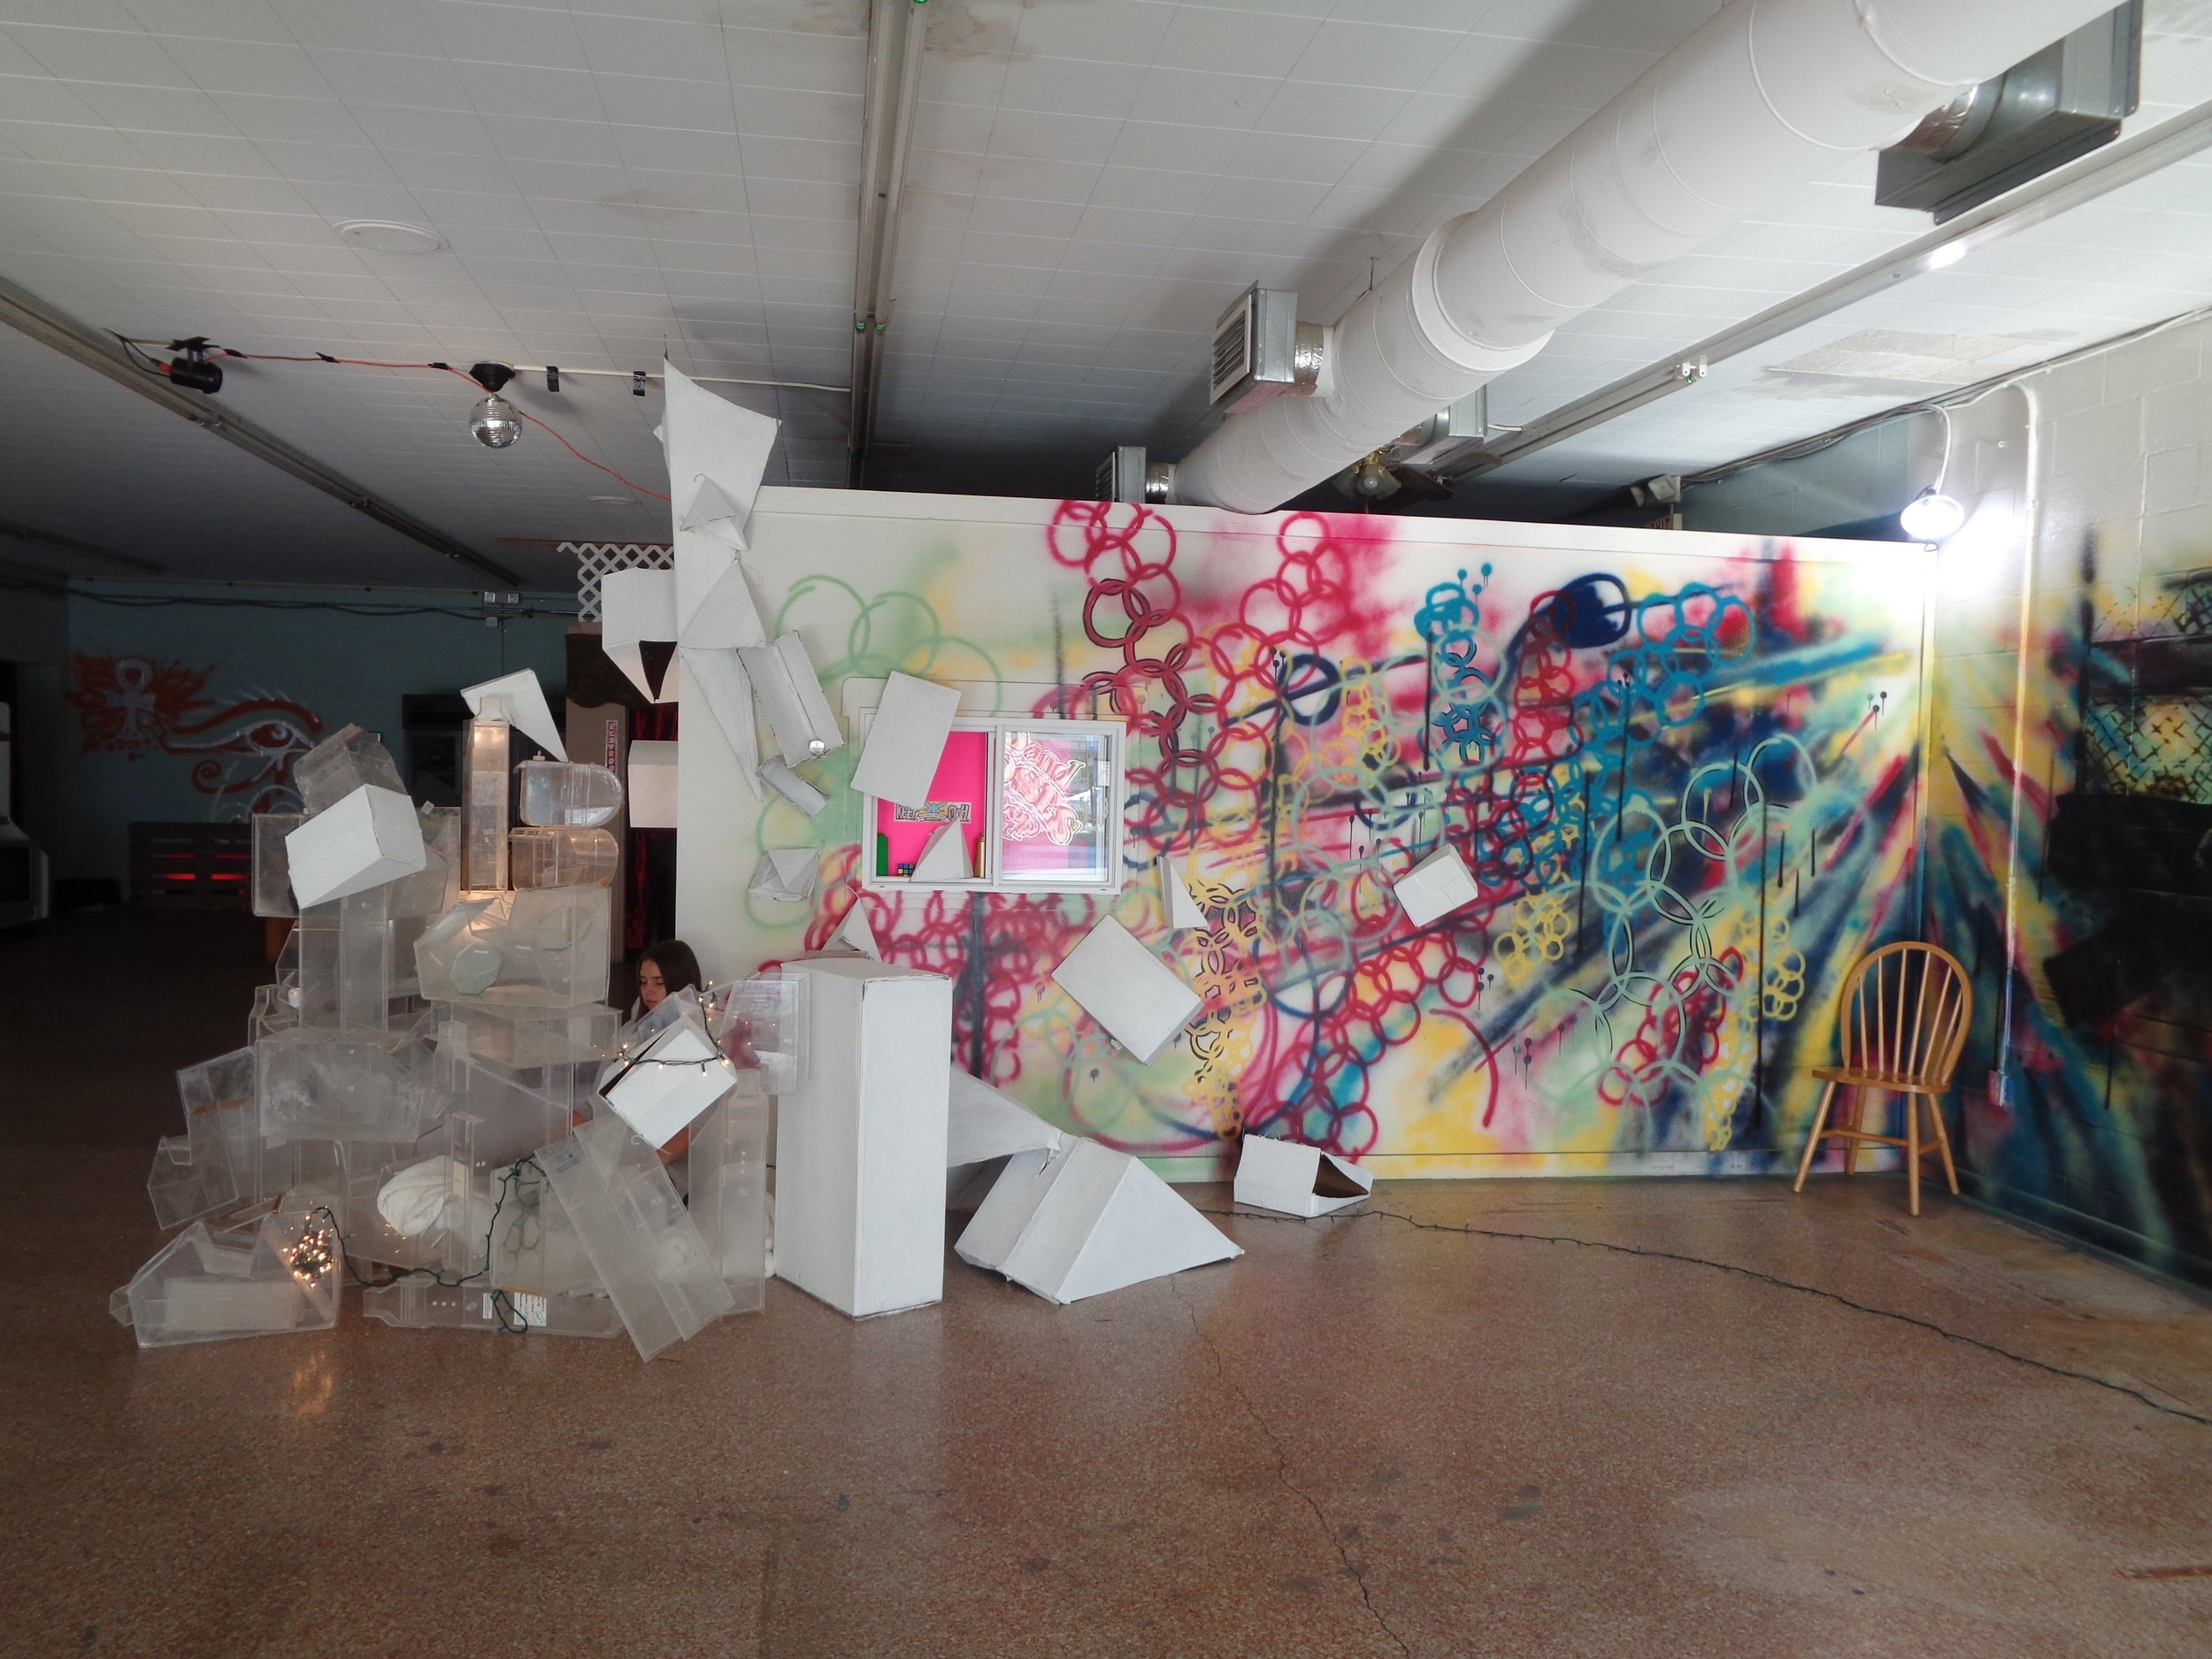 Raina meditating in her installation by her wall (1).jpg